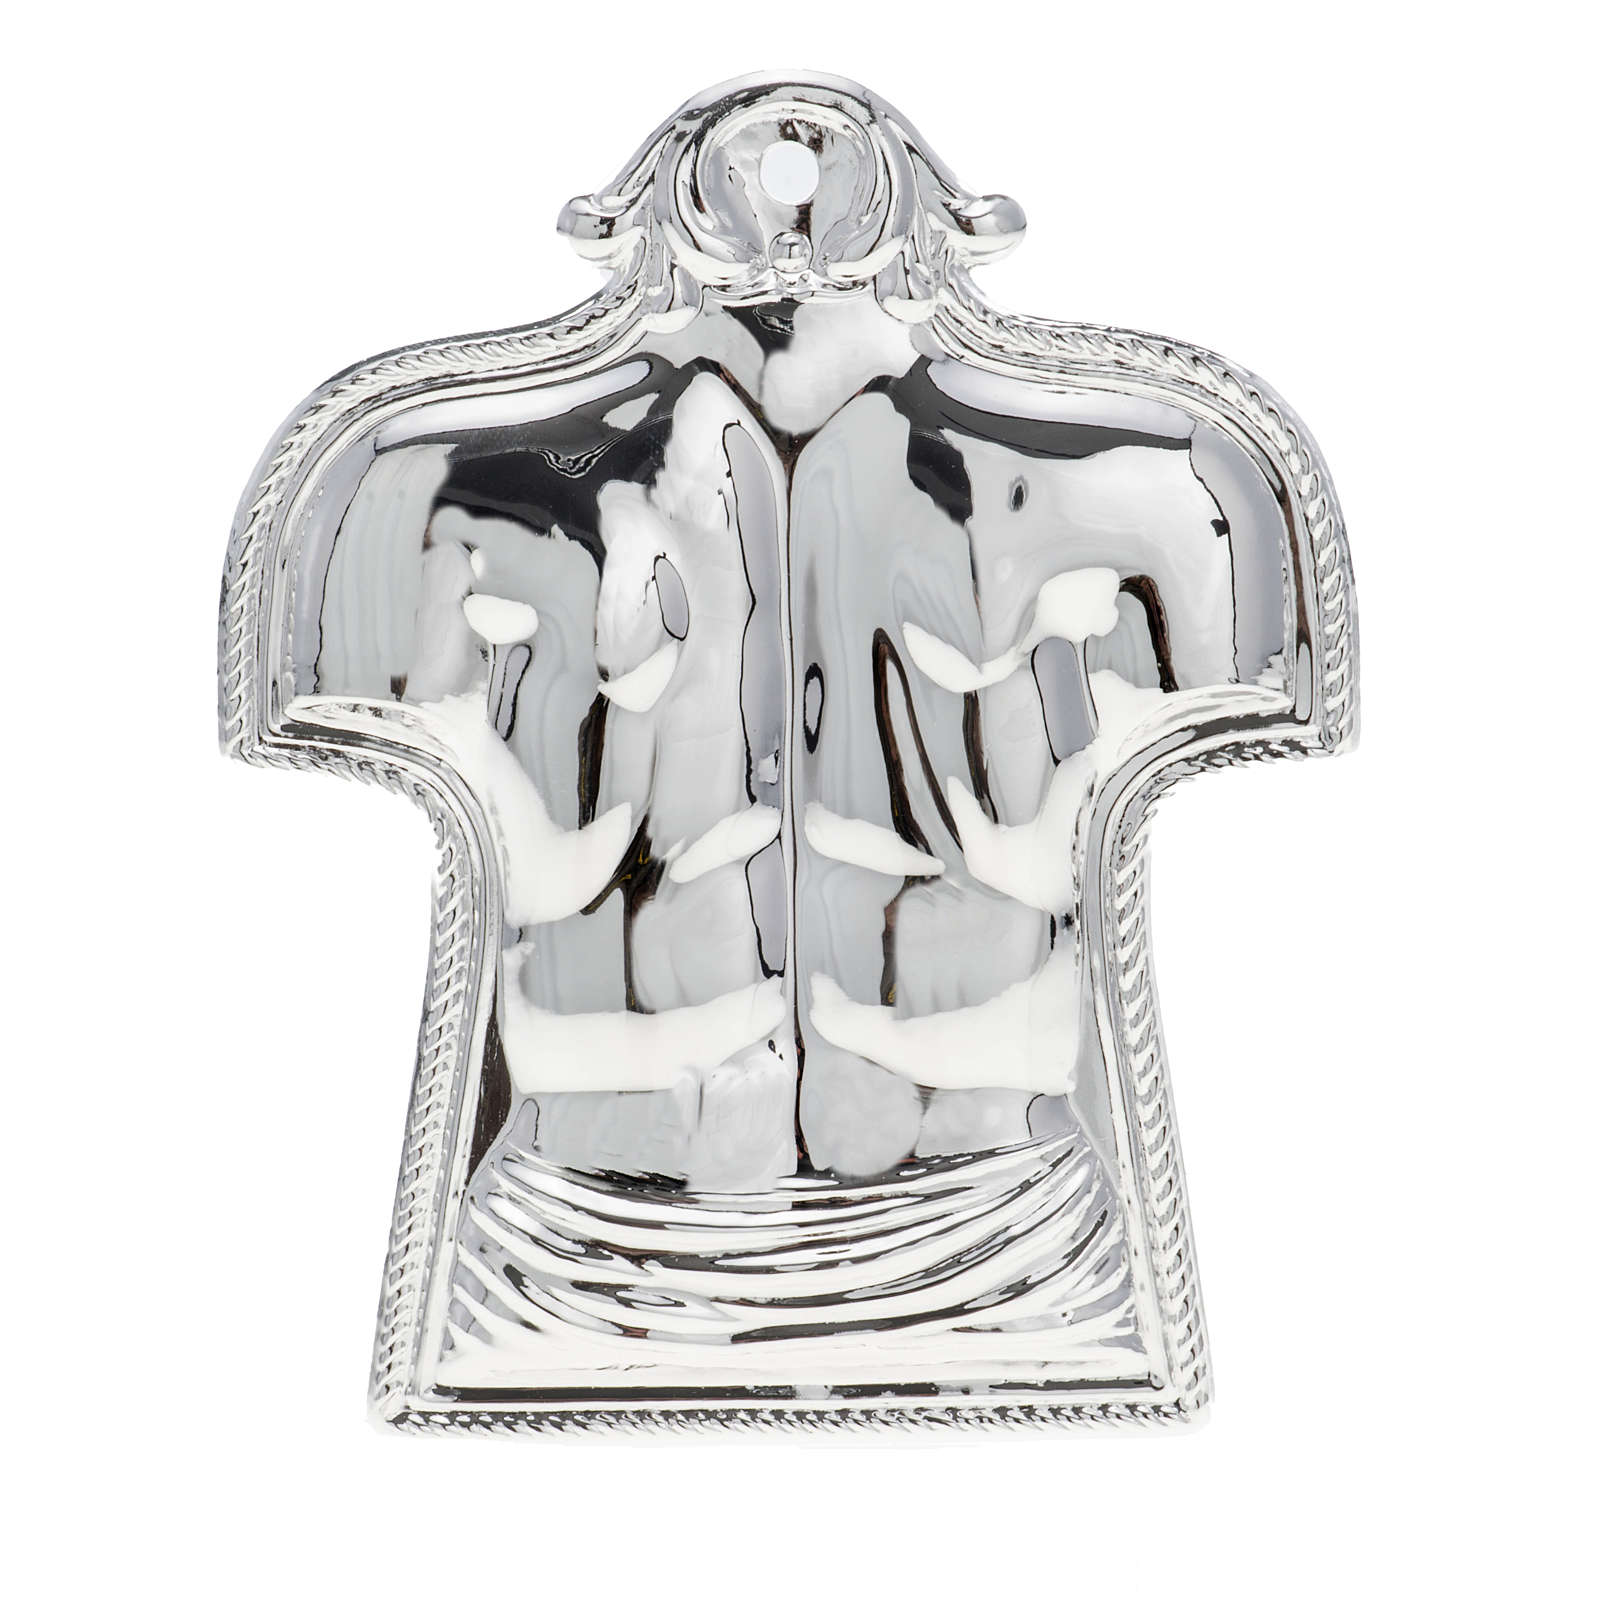 Ex-voto, back and shoulders in sterling silver or metal 3